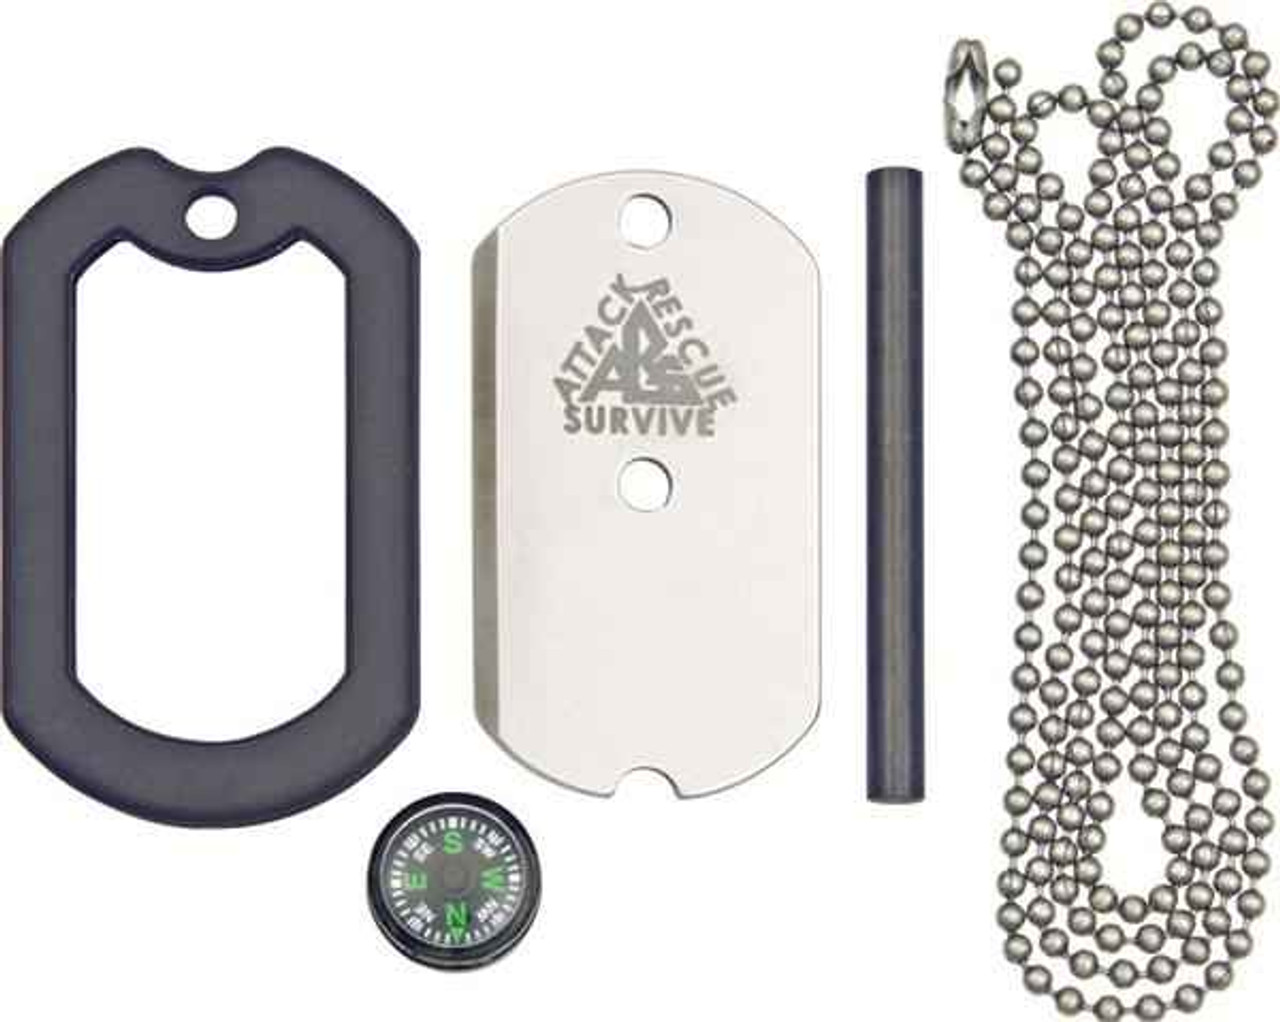 Dog Tag Deluxe Survival Knife, DT002 , 440C SS, Protective Sheath